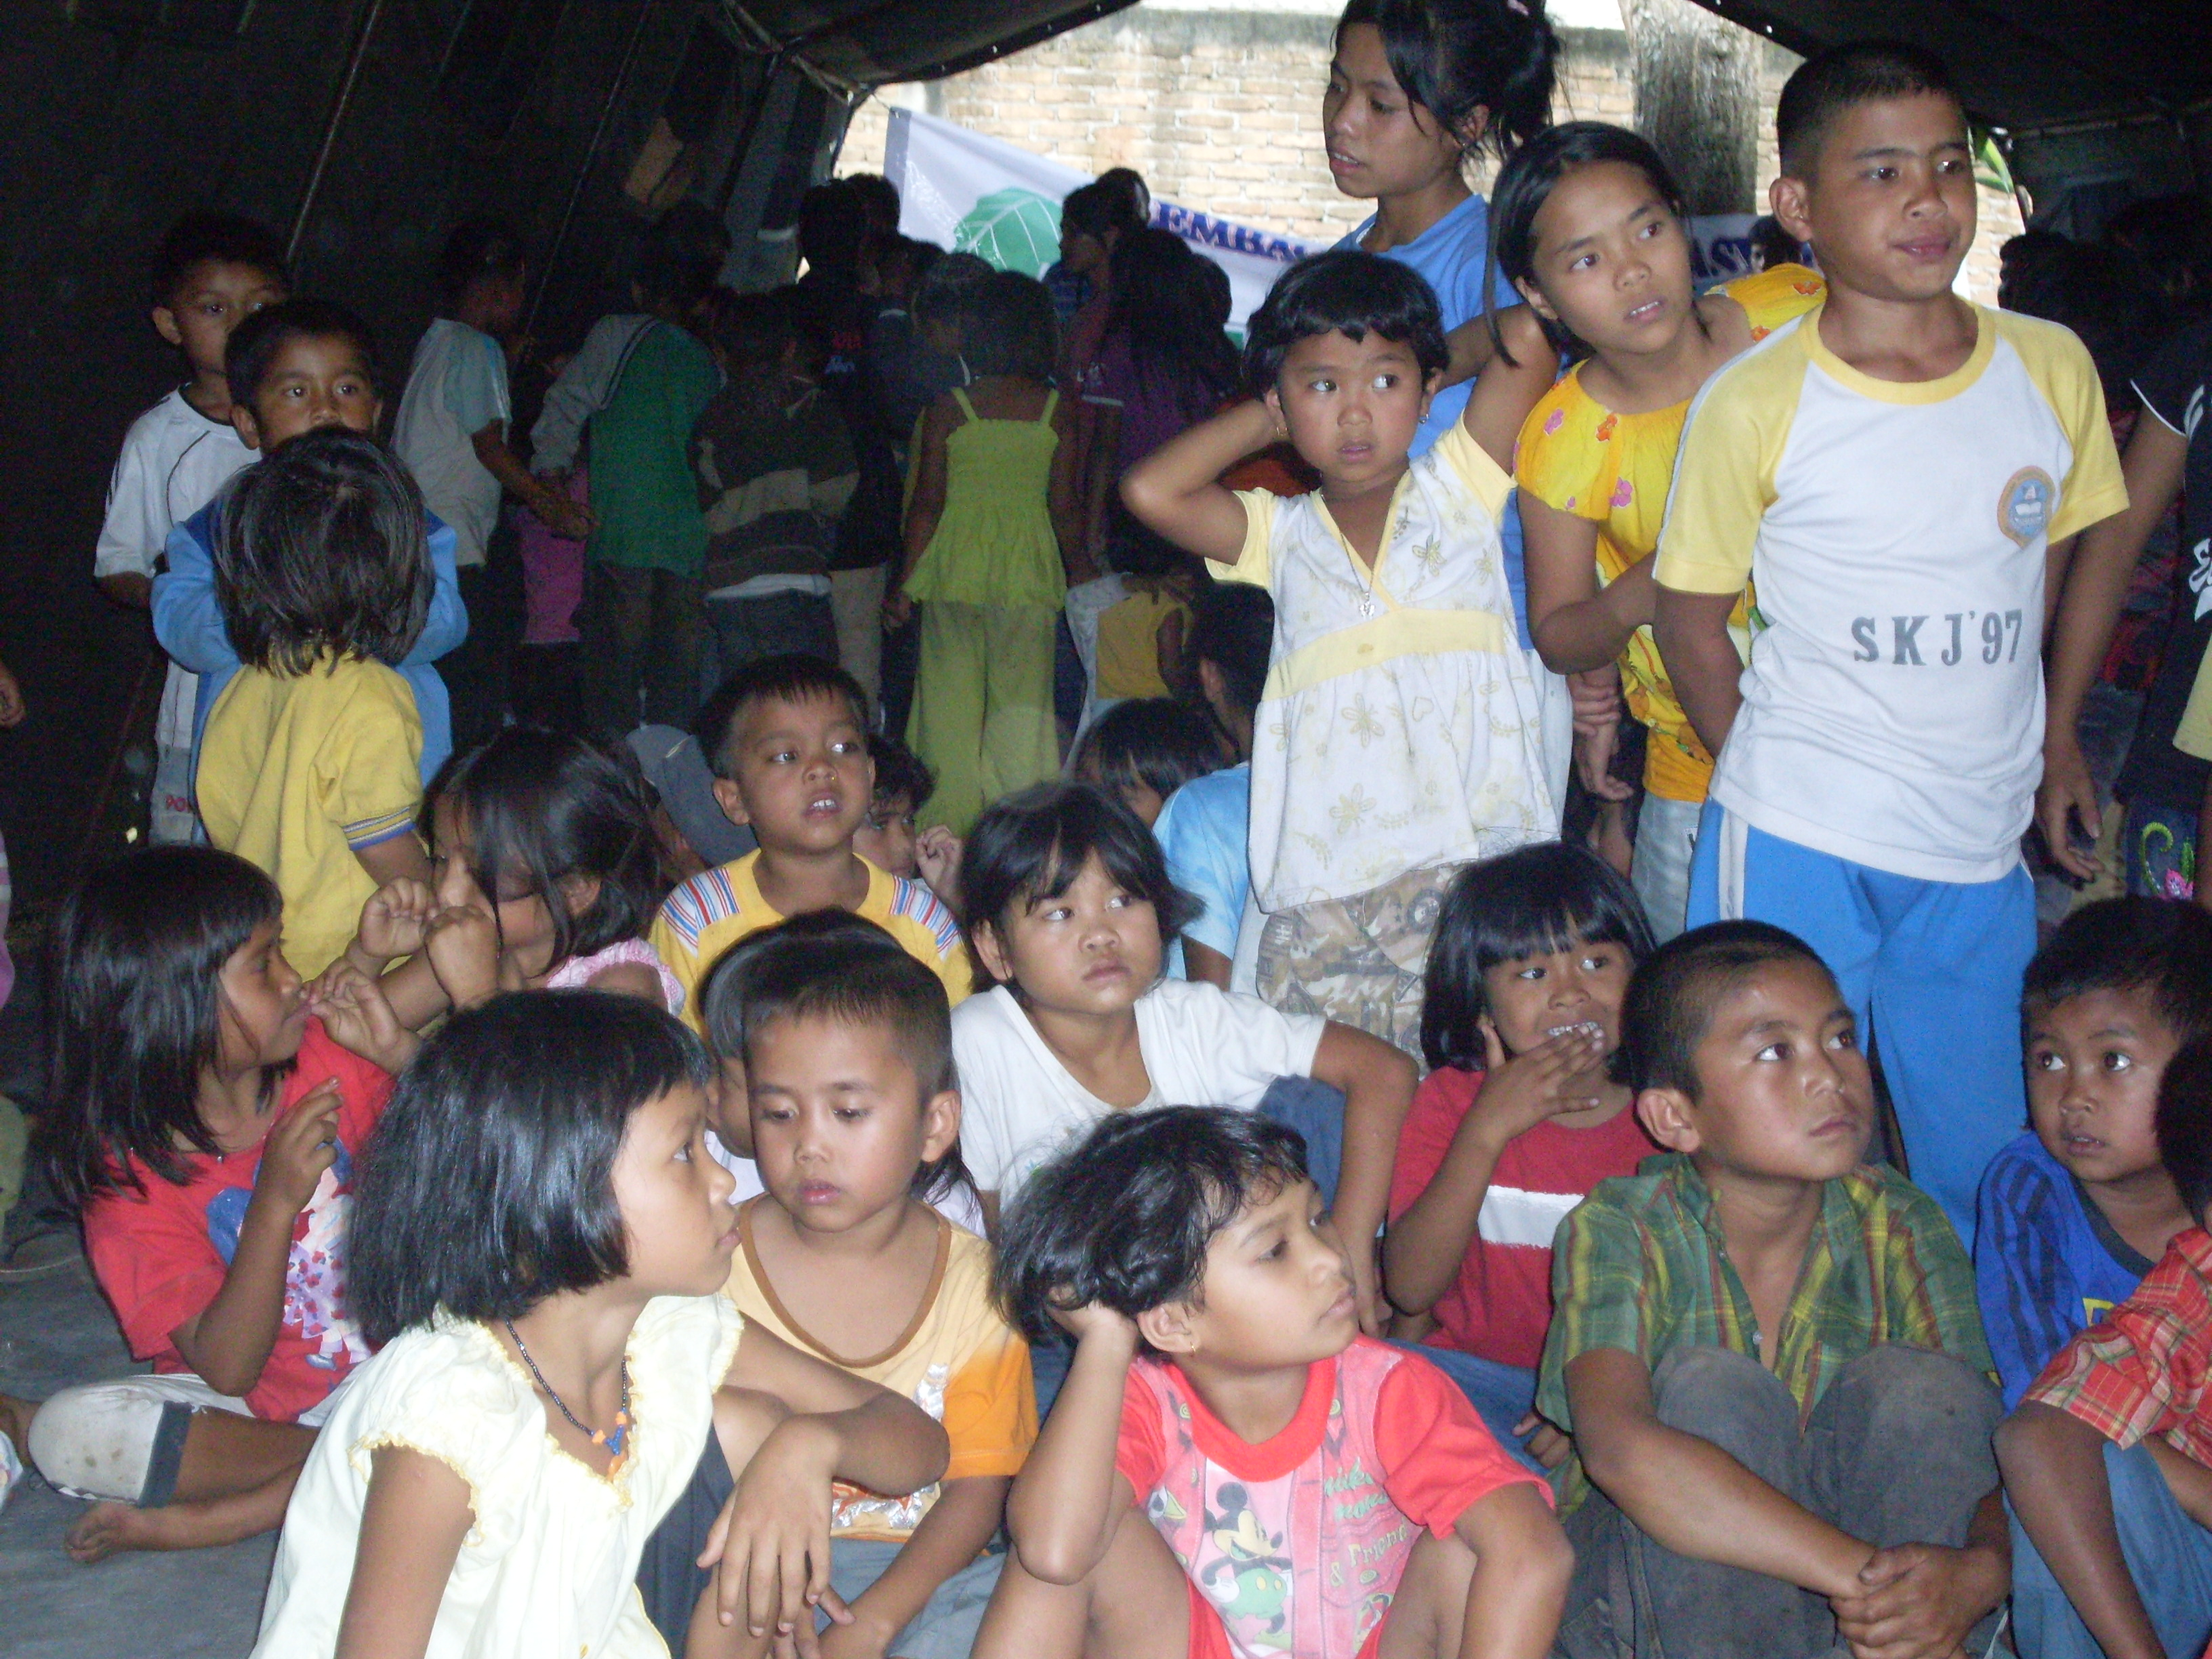 Children staying in a tent at an evacuation posts in Karo District, North Sumatra Province. Thousands fled their homes after the once dormant Mount Sinabung volcano began erupting at the end of August 2010